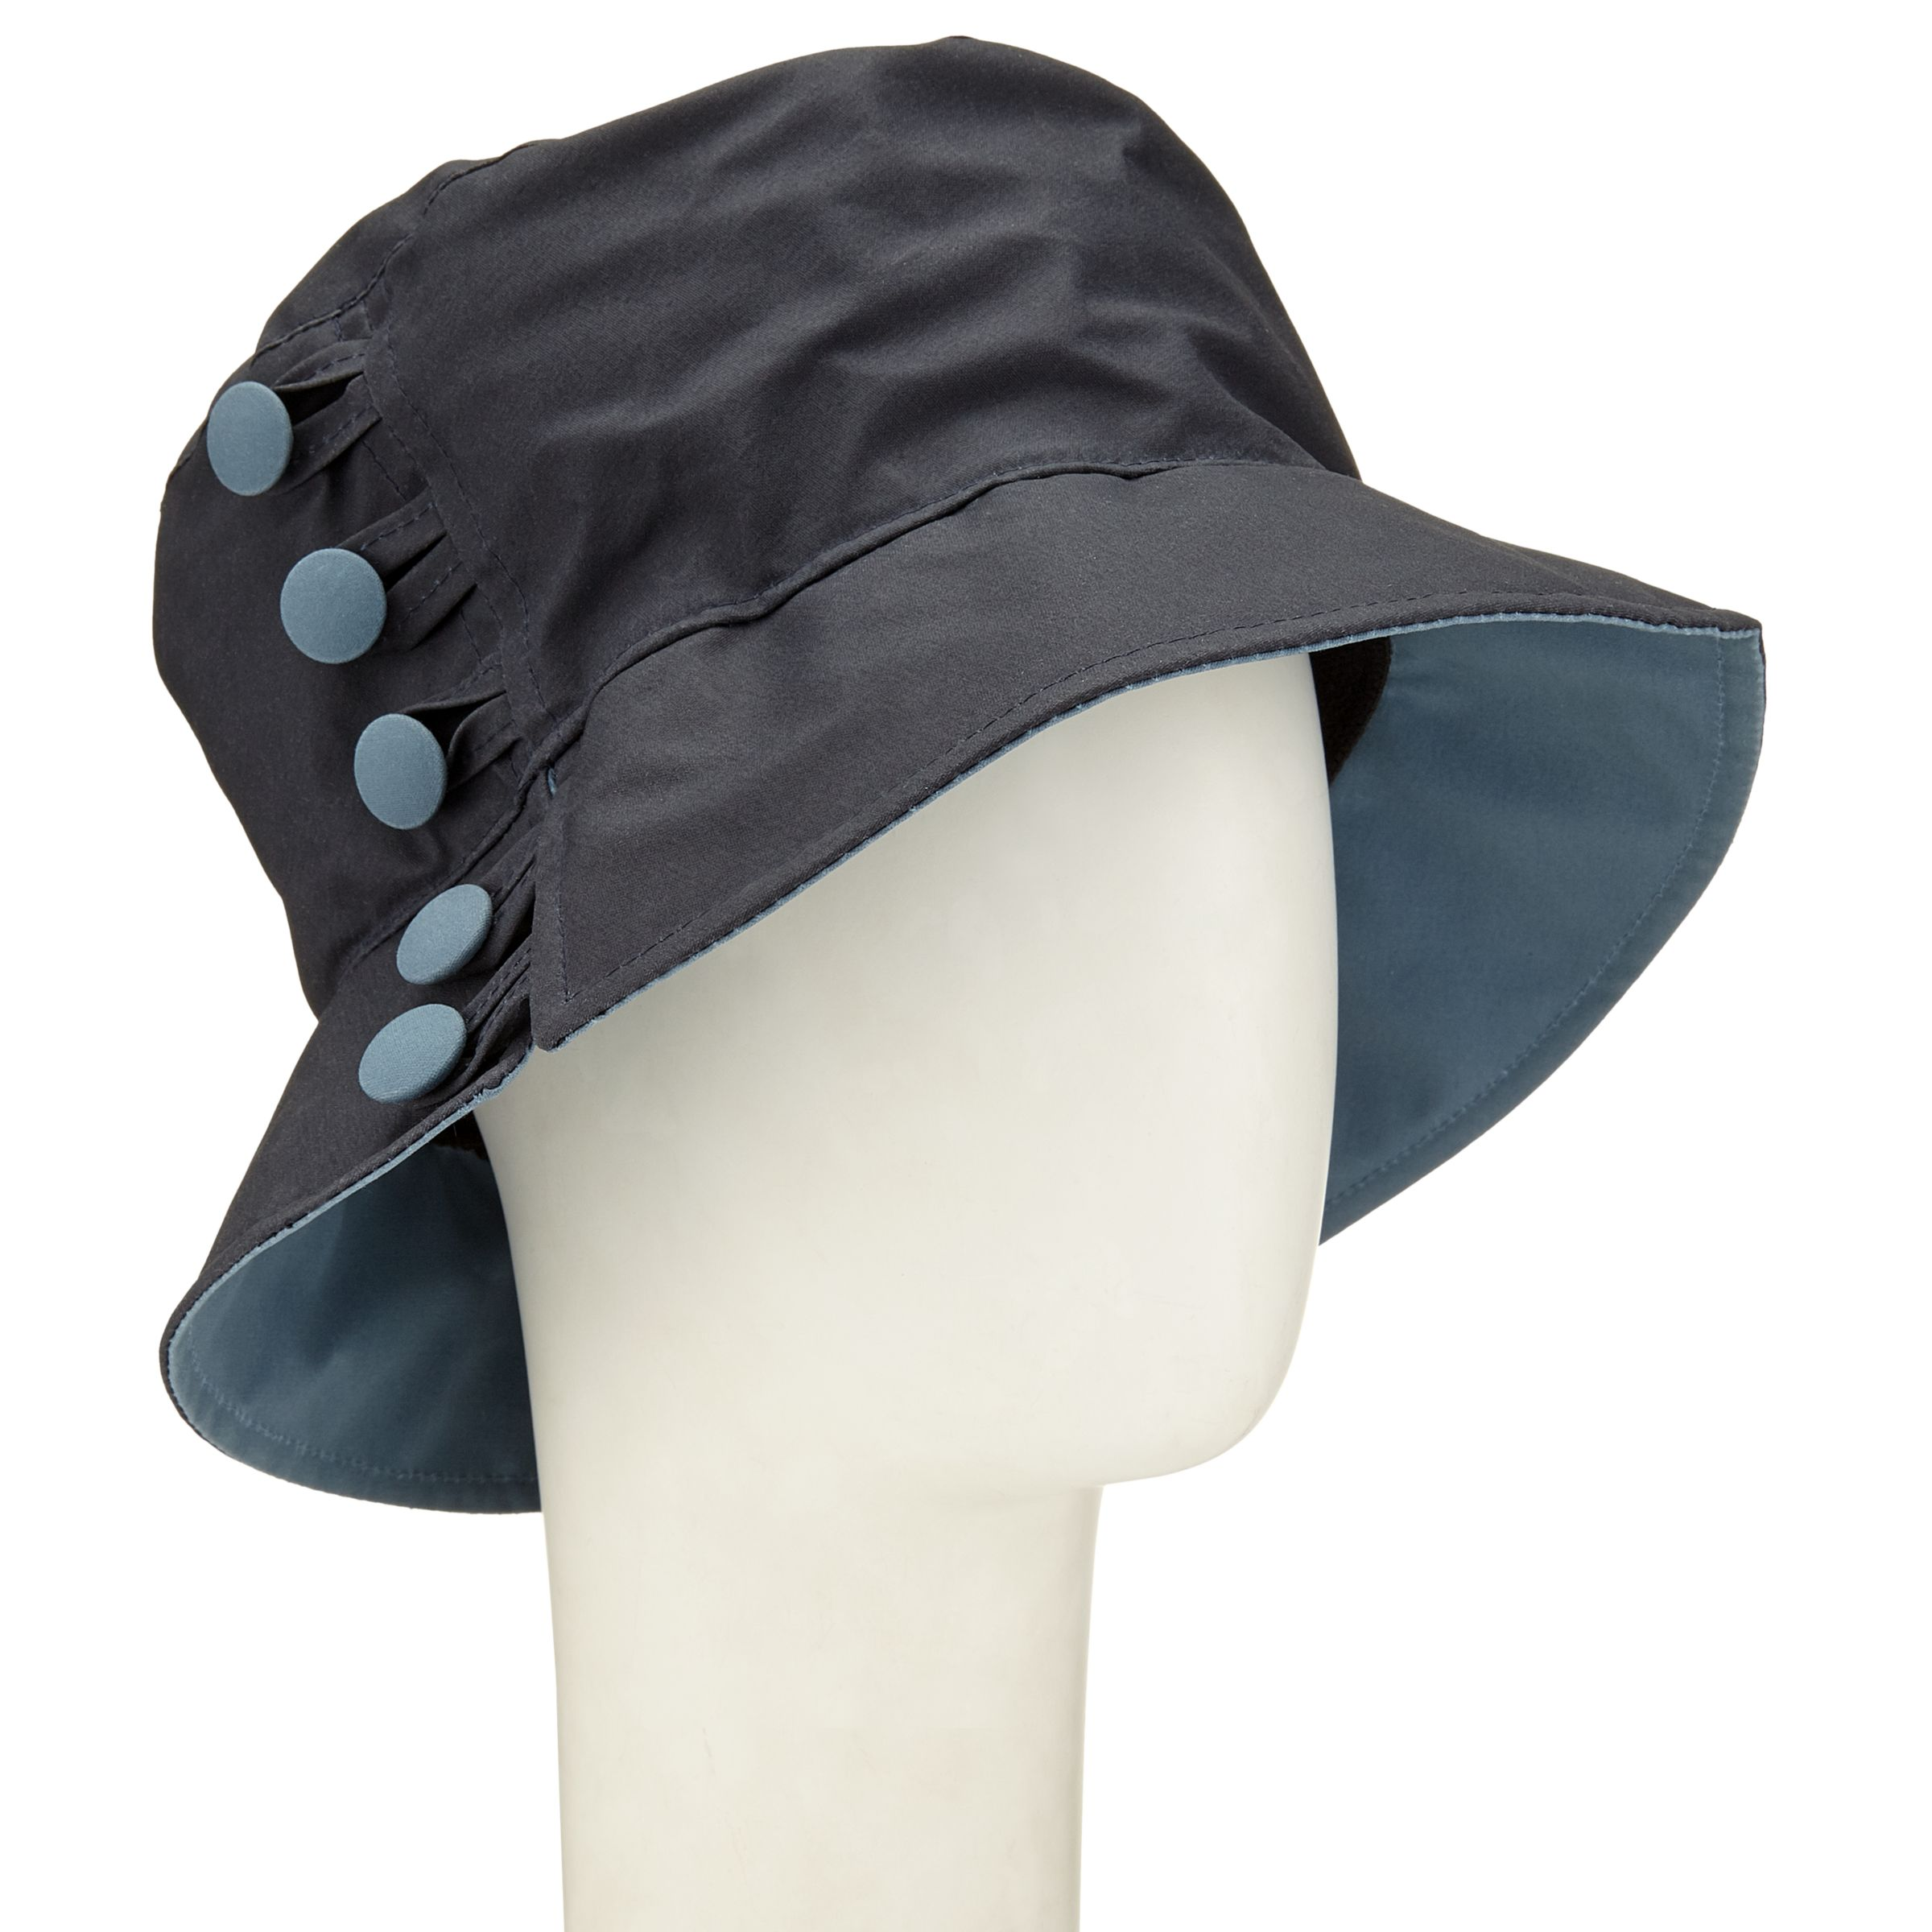 Olney Olney Waxed Cotton Button Rain Hat, Navy/Airforce Blue